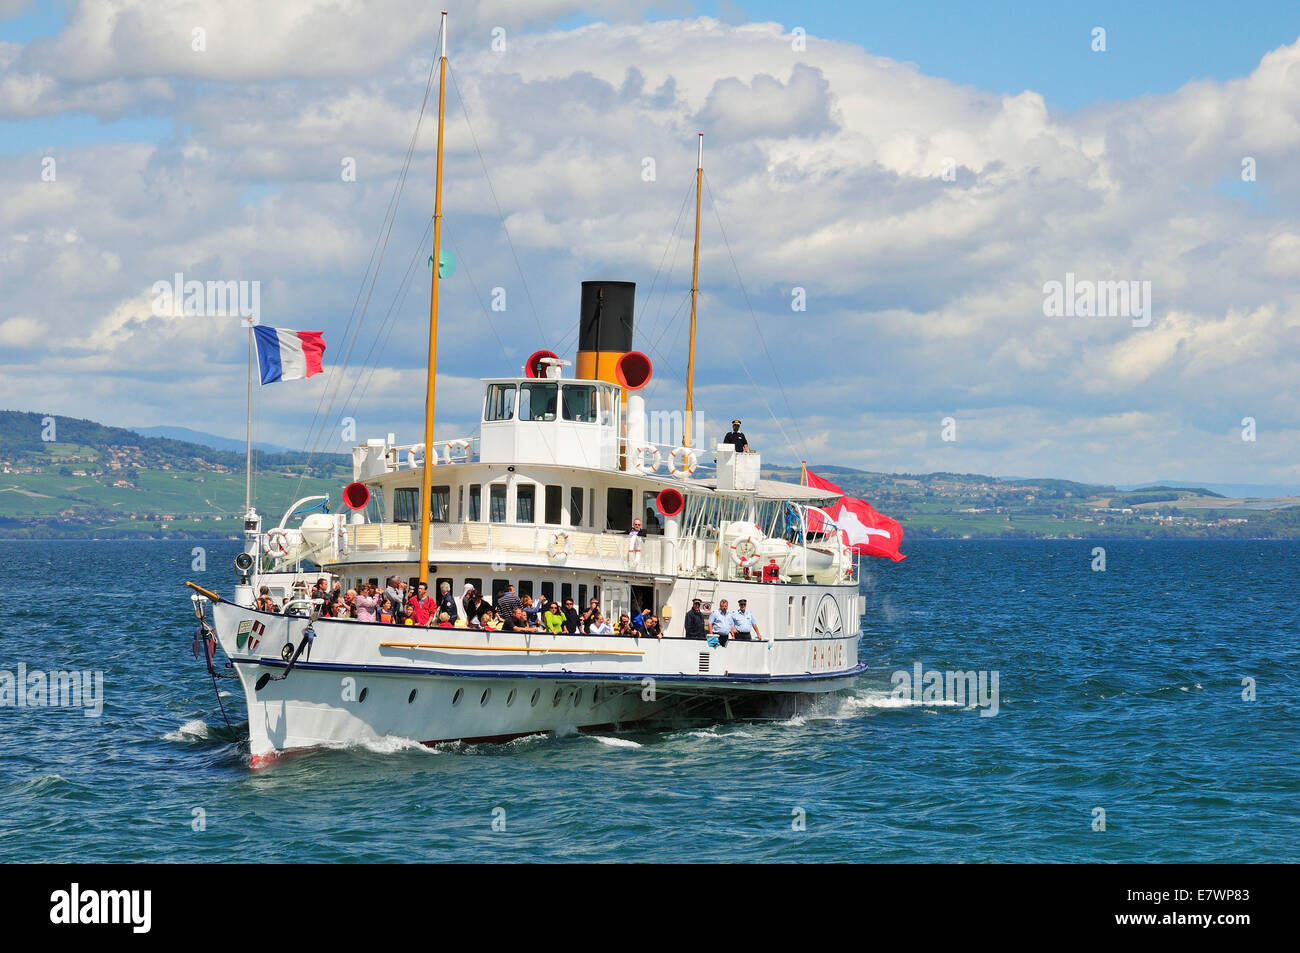 Paddle steamer France on Lake Geneva or Lac Leman, Yvoire, Rhone-Alpes, Haute-Savoie, France Stock Photo